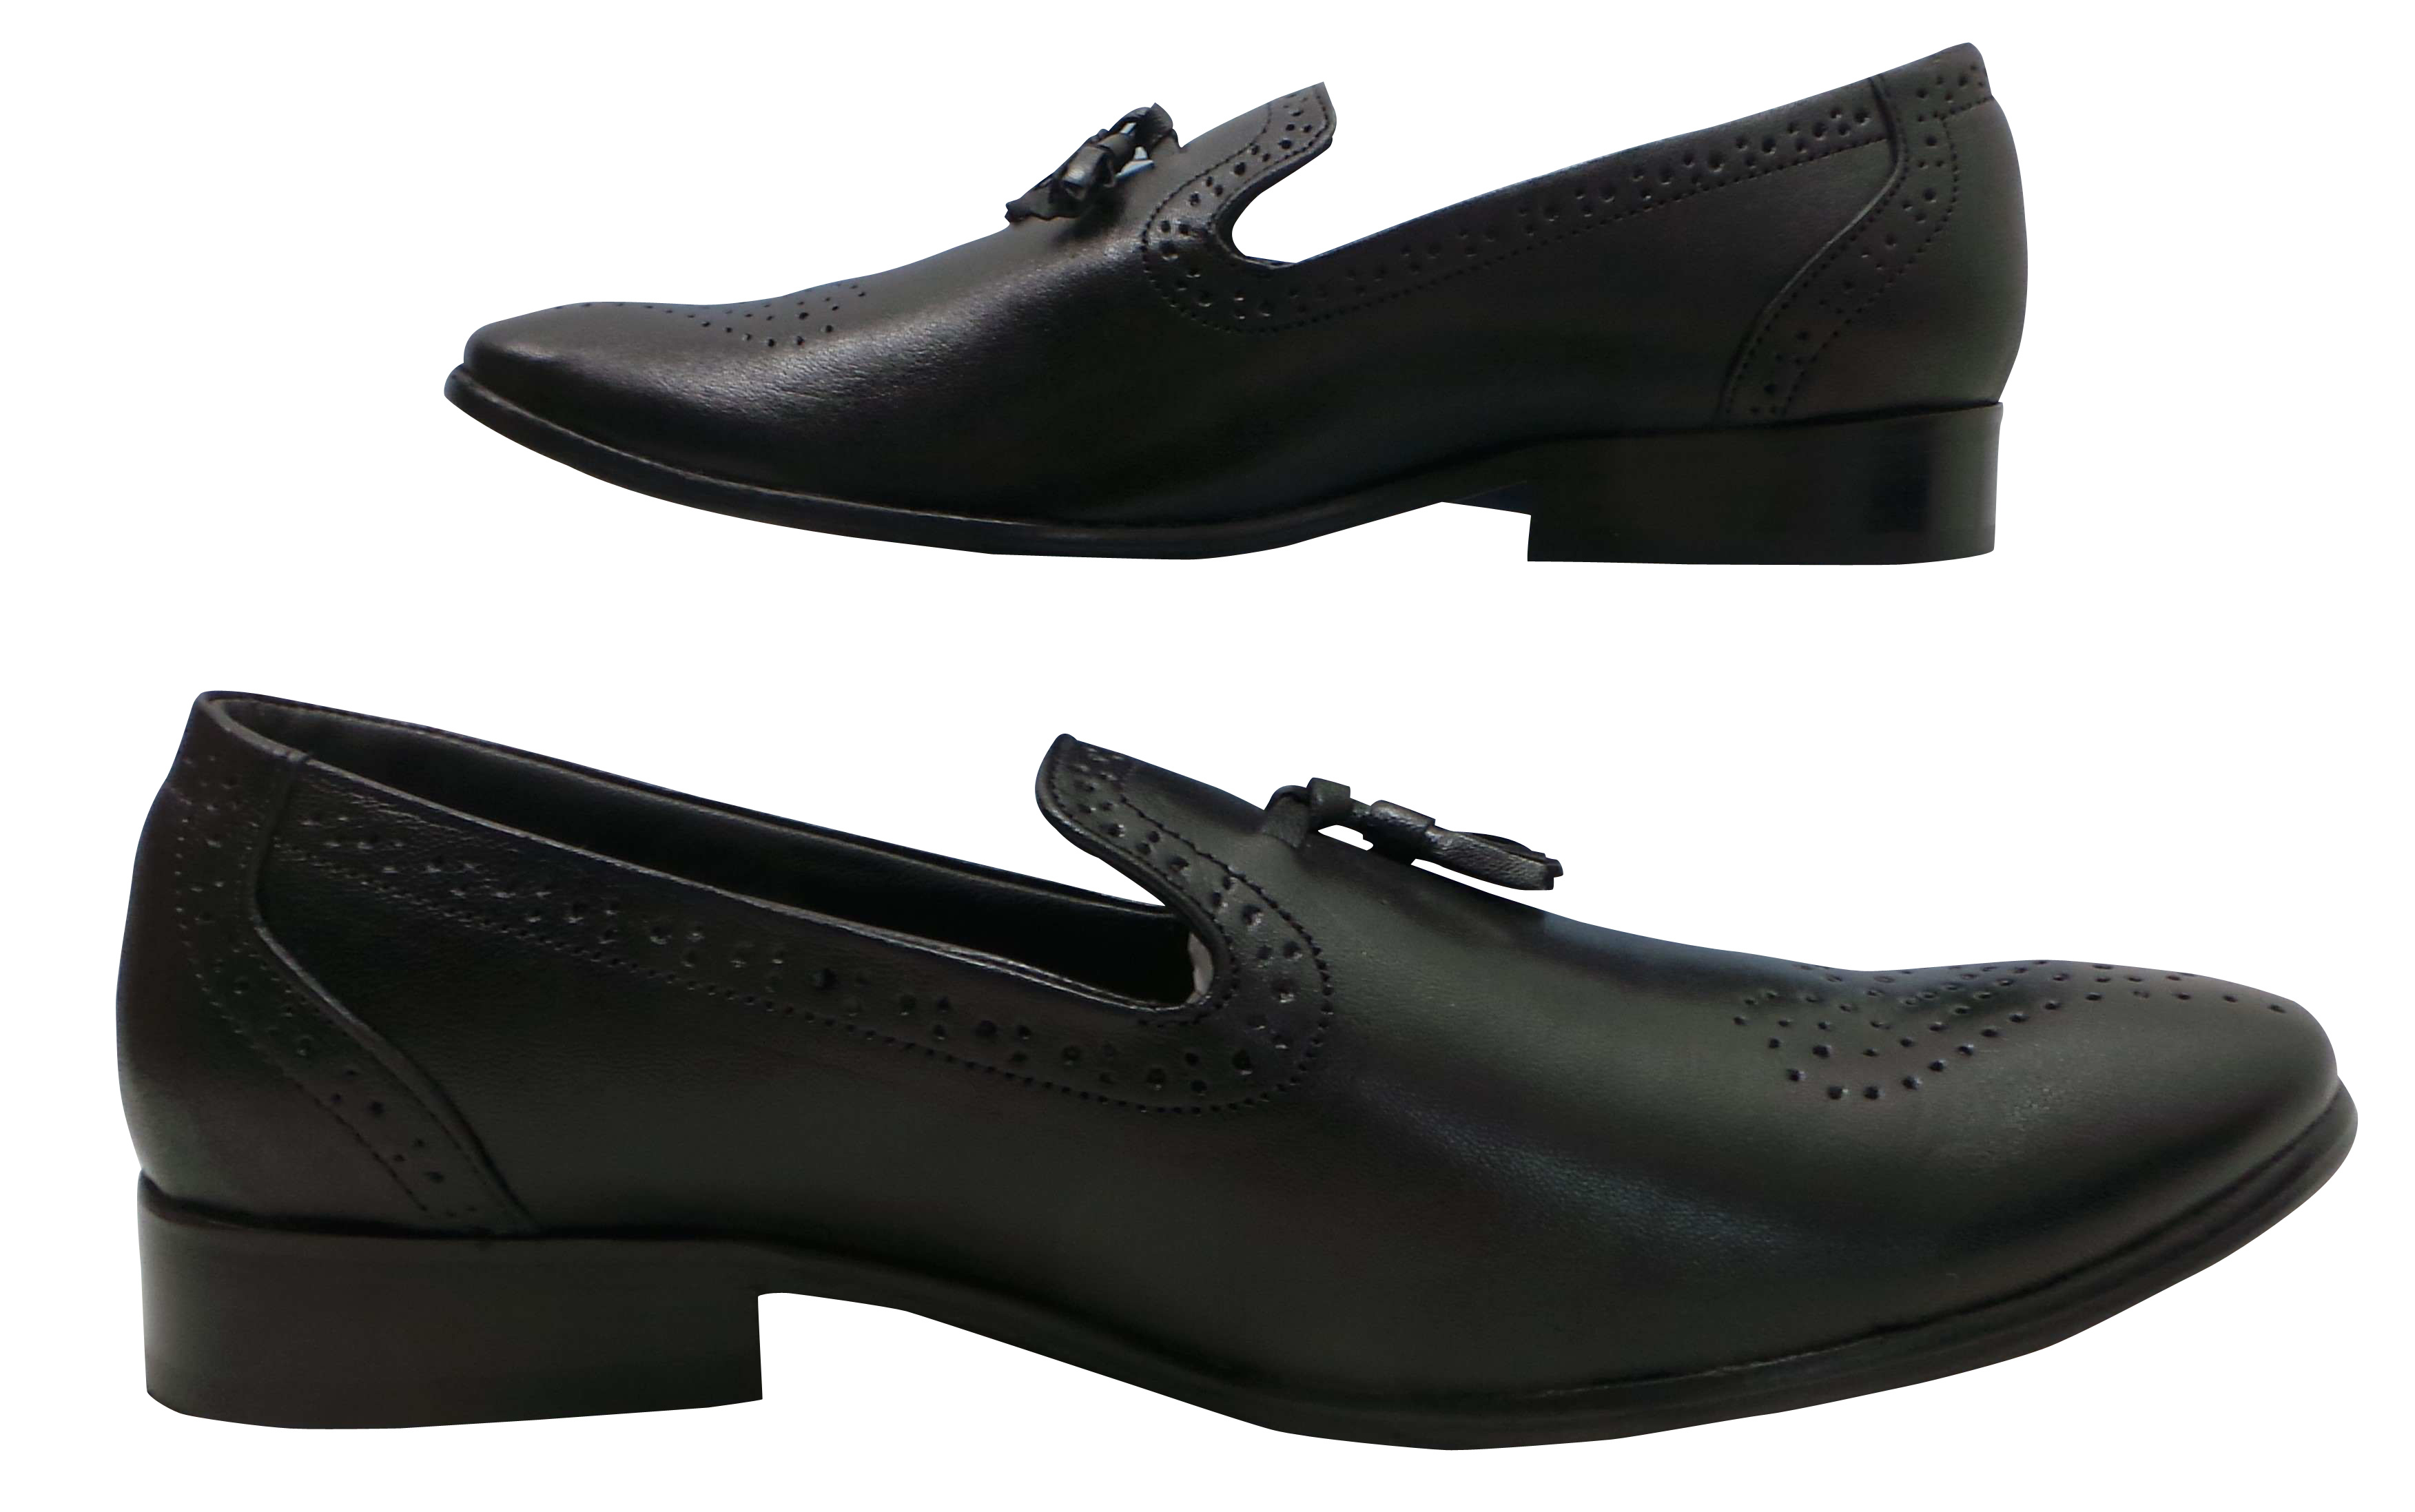 Mens Leather Loafers with FREE Shipping & Exchanges, and a % price guarantee. Choose from a huge selection of Mens Leather Loafers styles.